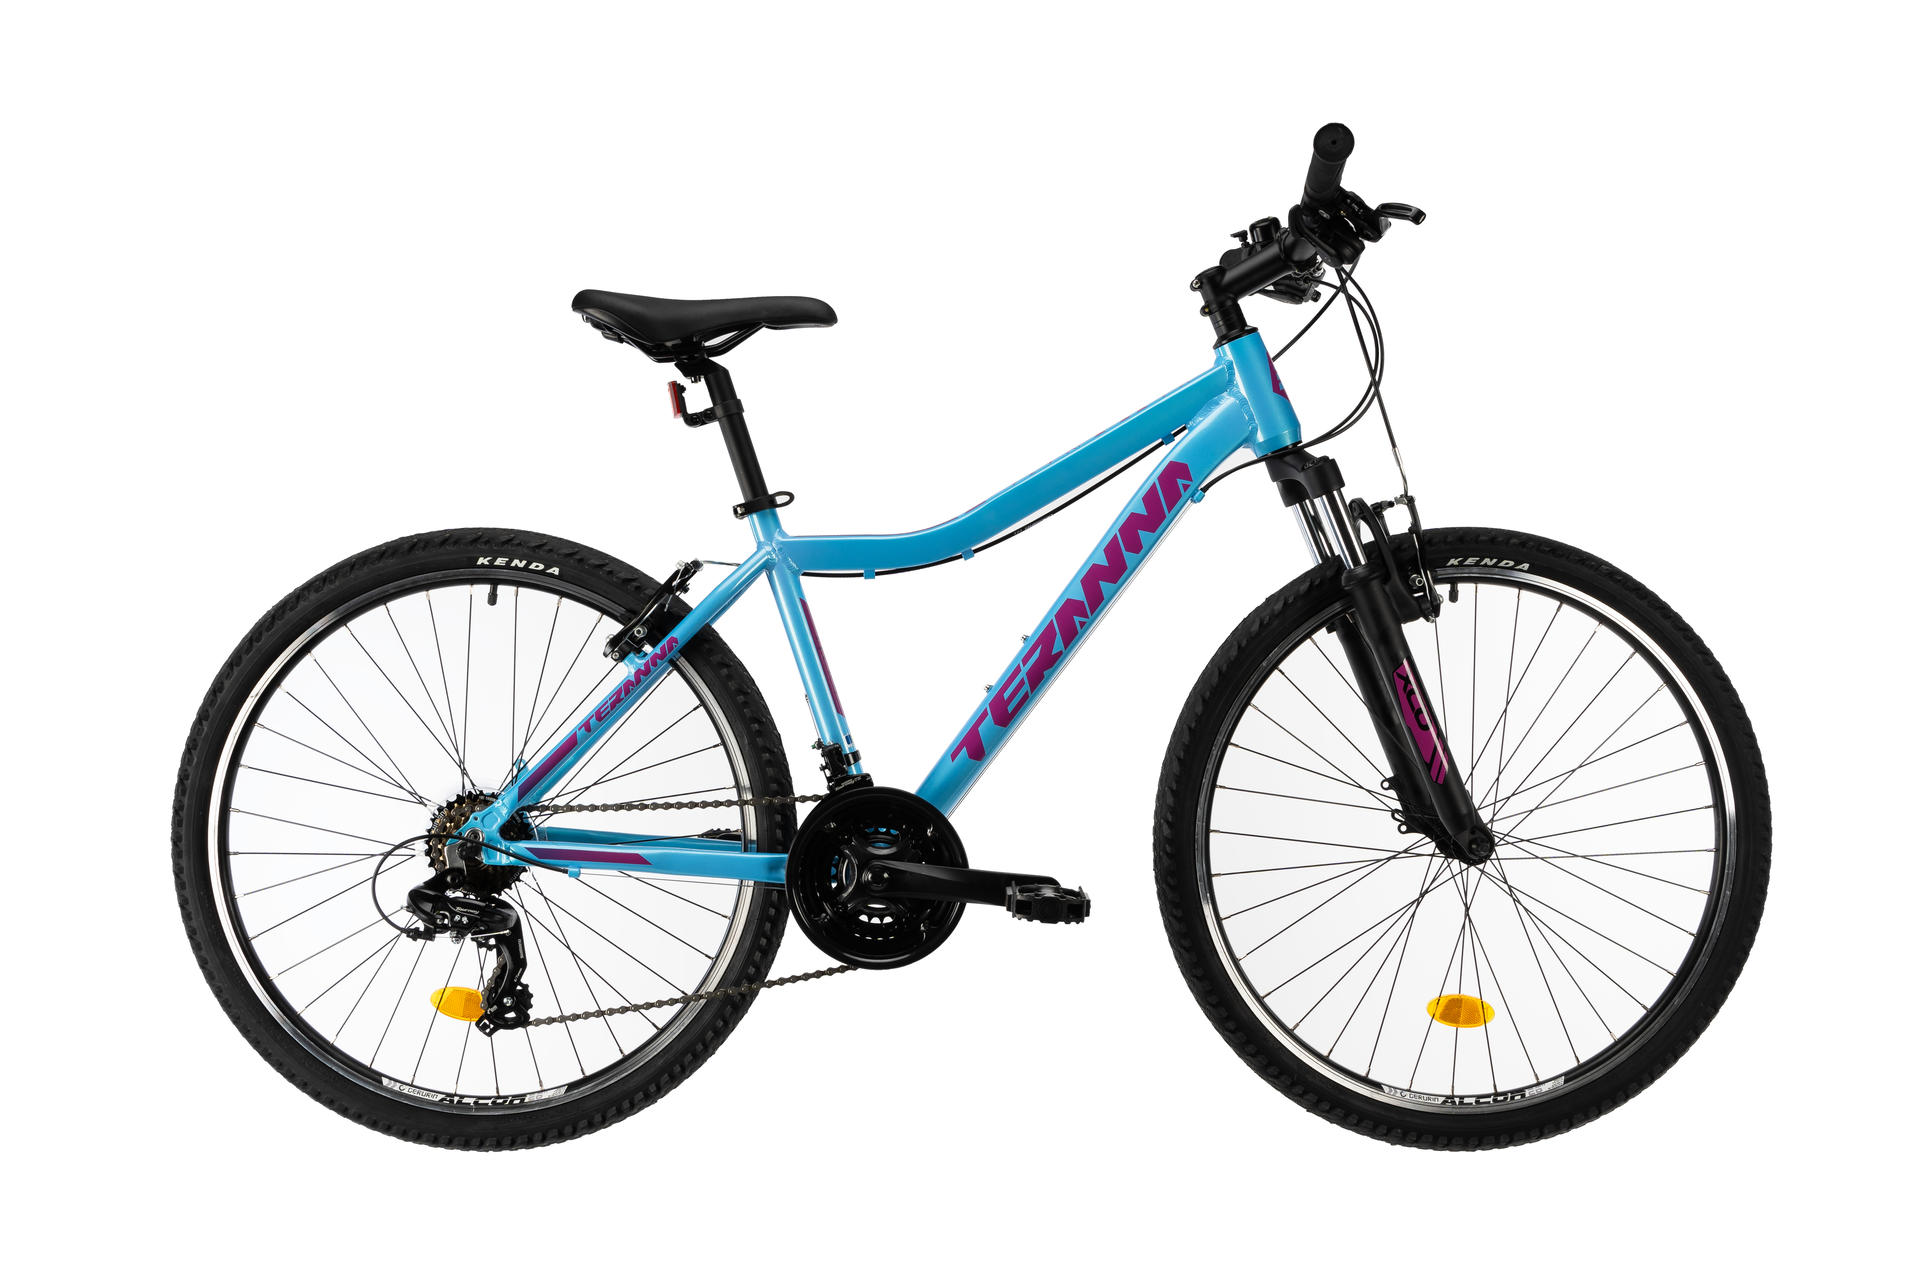 Mountain bike DHS 2622 Blue 405mm